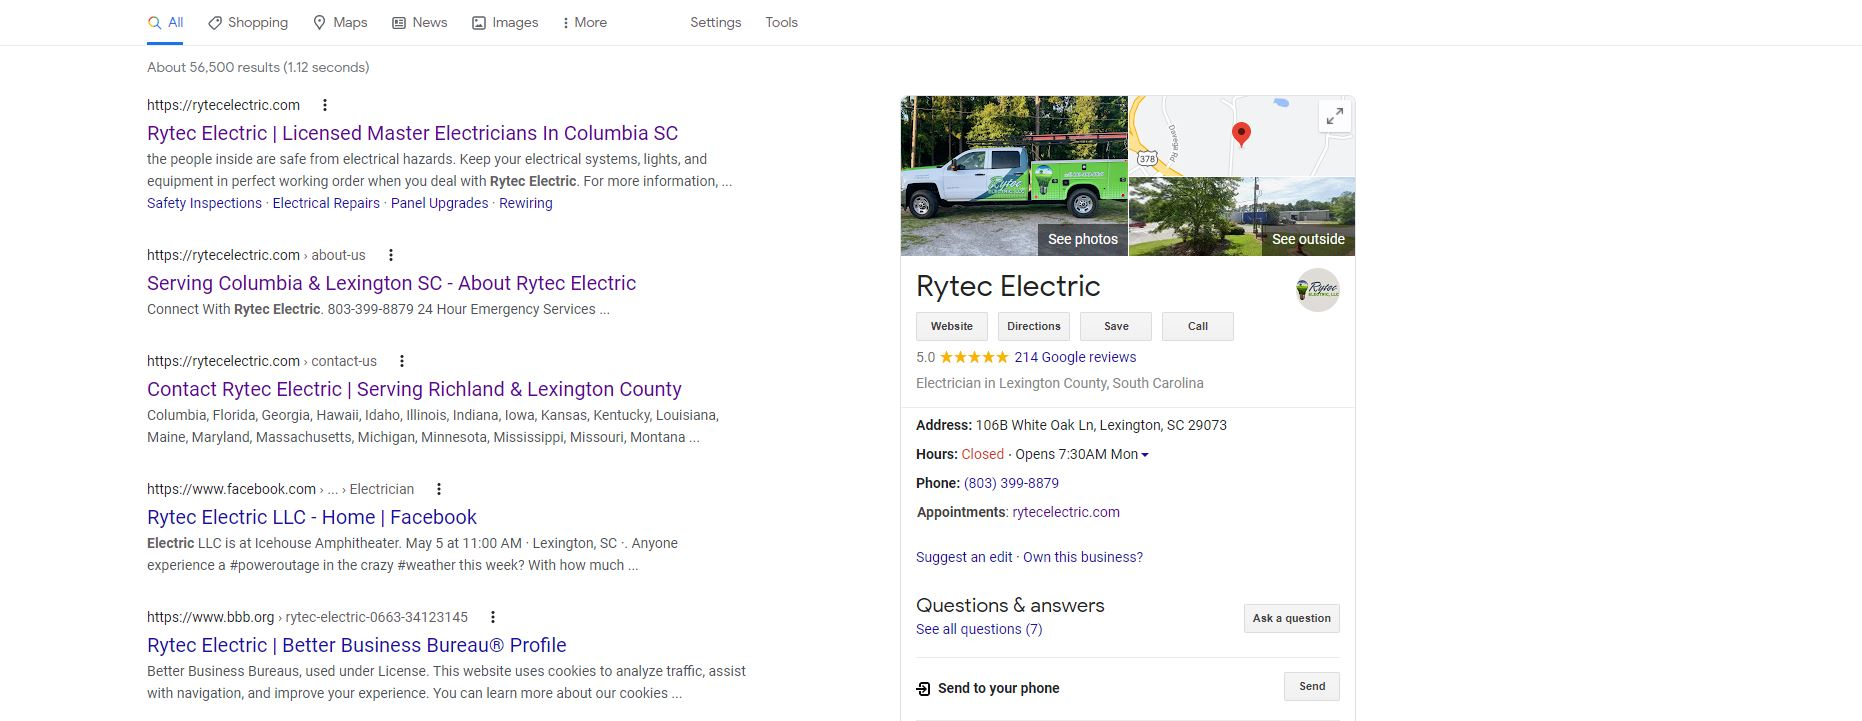 Rytec Electric is the best in the midlands